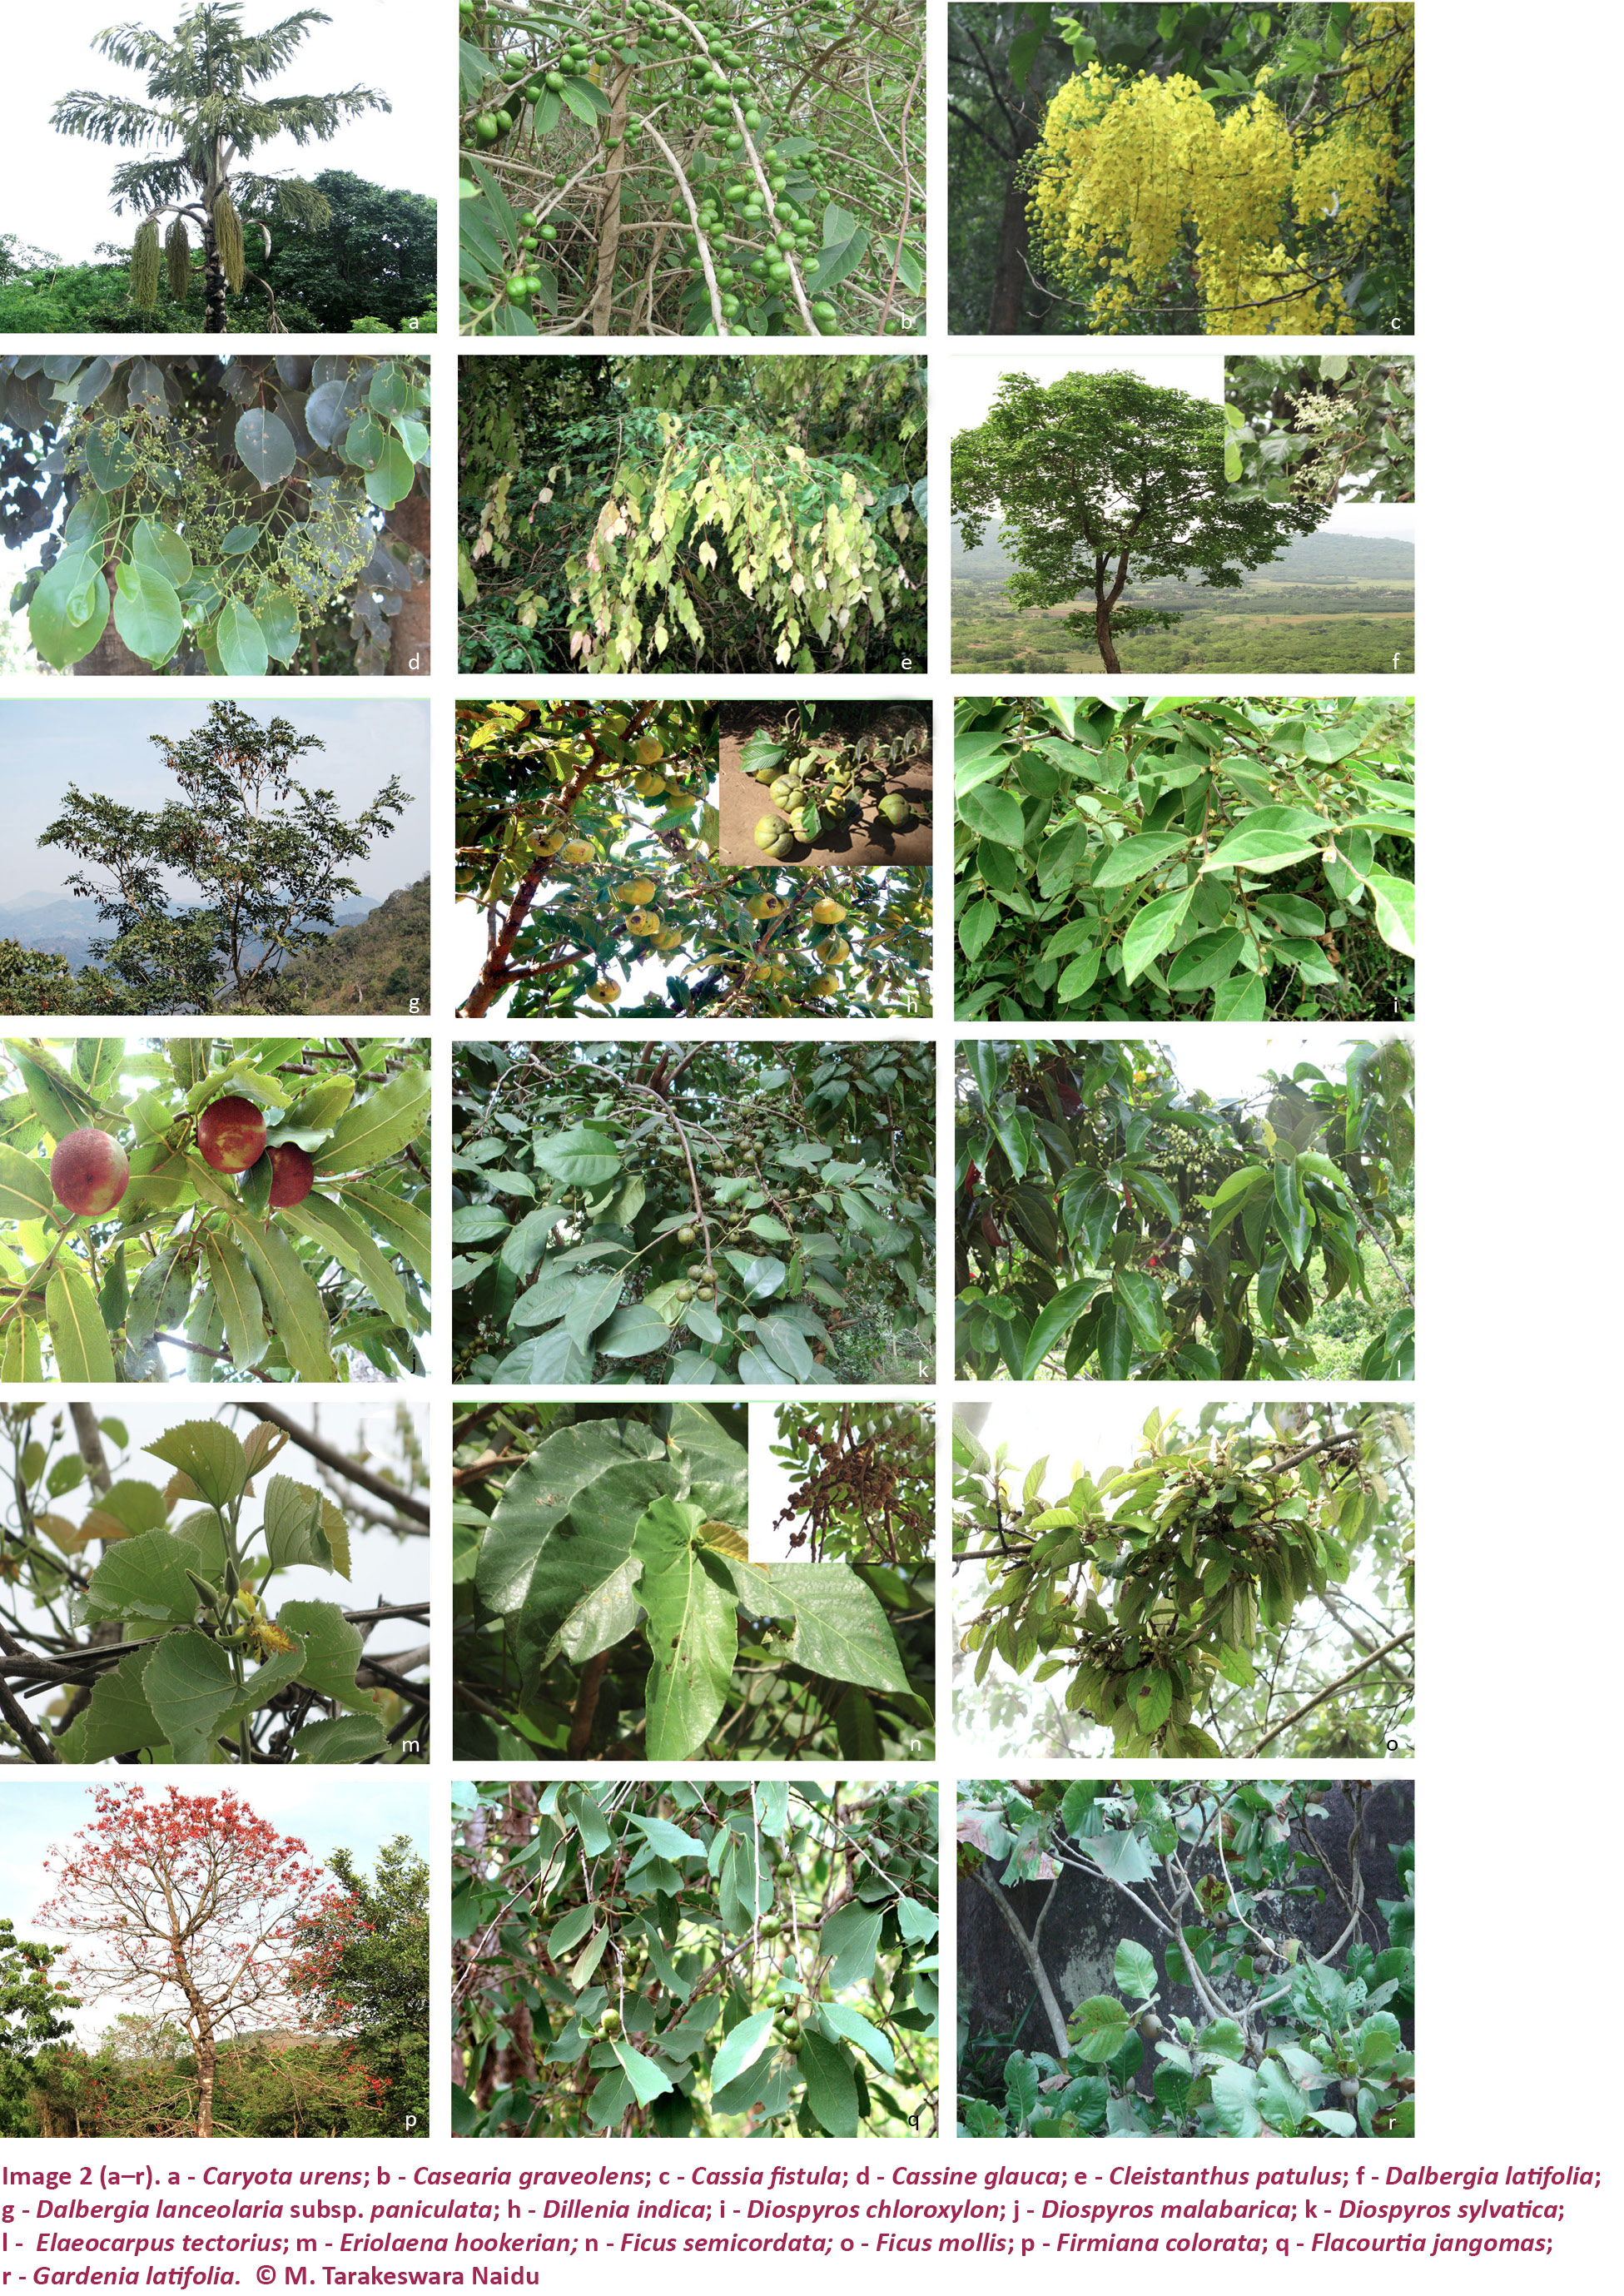 View of Tree species diversity in the Eastern Ghats of northern